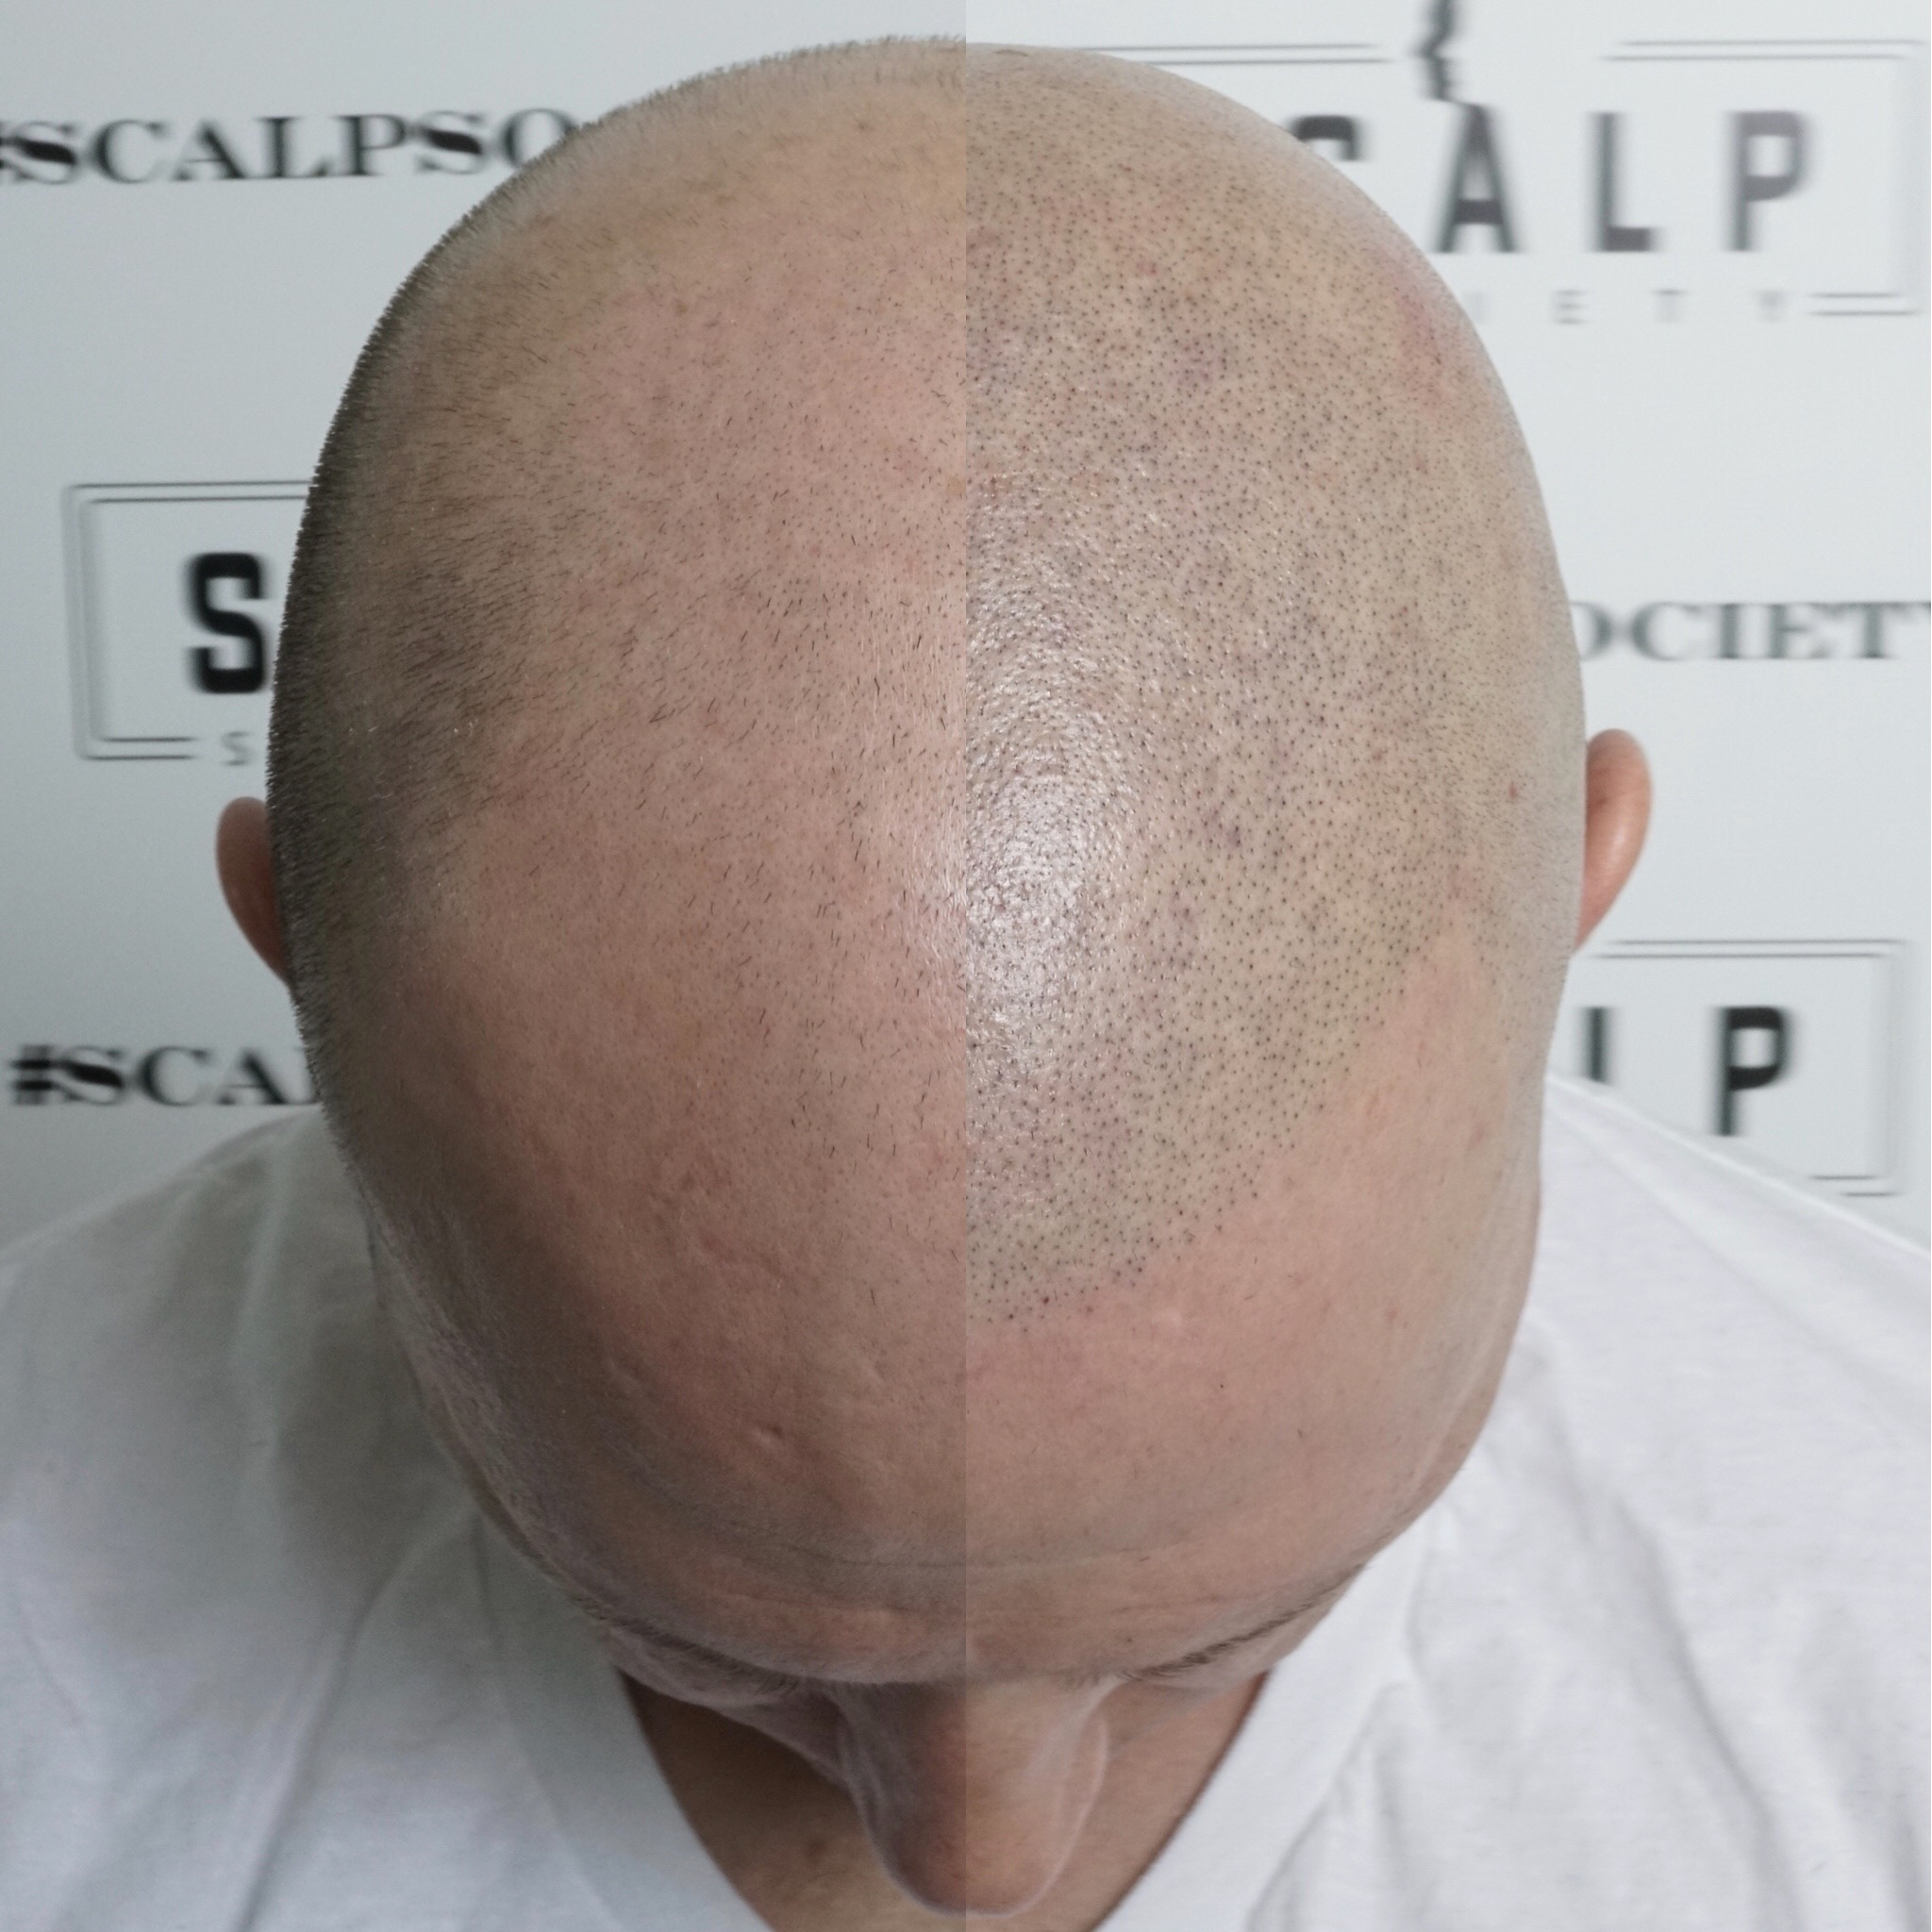 Male 30. Clients with lighter skin complexion can be more difficult because when their head is shaven it has a greenish - grey tone to the follicles. We had to carefully match the micropigmentation to the color of his follicles. Micropigmentation is for everyone, no matter the skin tone, we can match it perfectly.